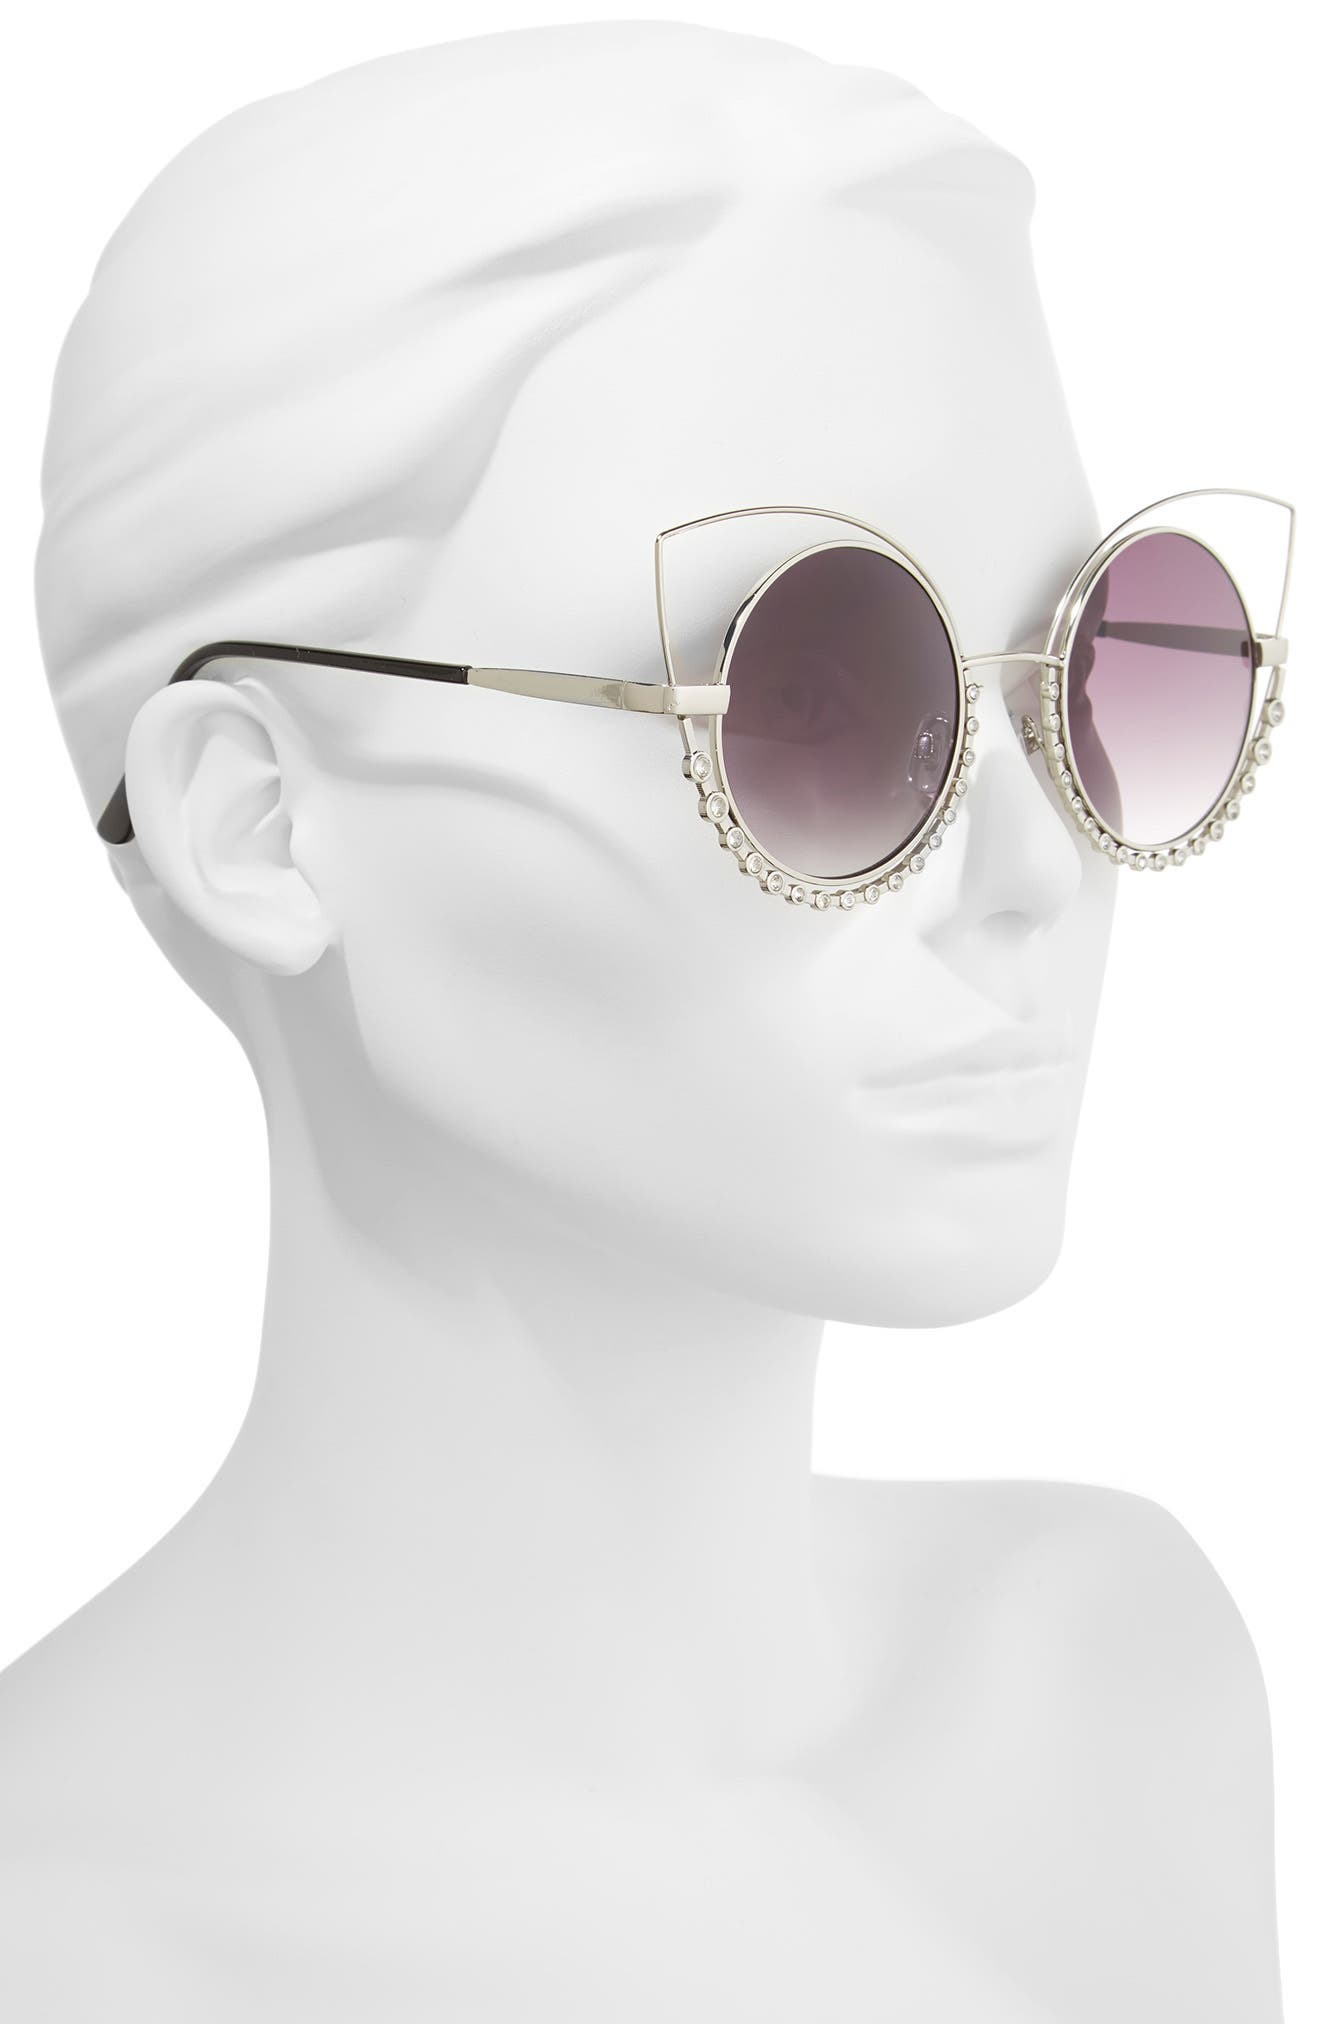 55mm Studded Round Sunglasses,                             Alternate thumbnail 2, color,                             Silver